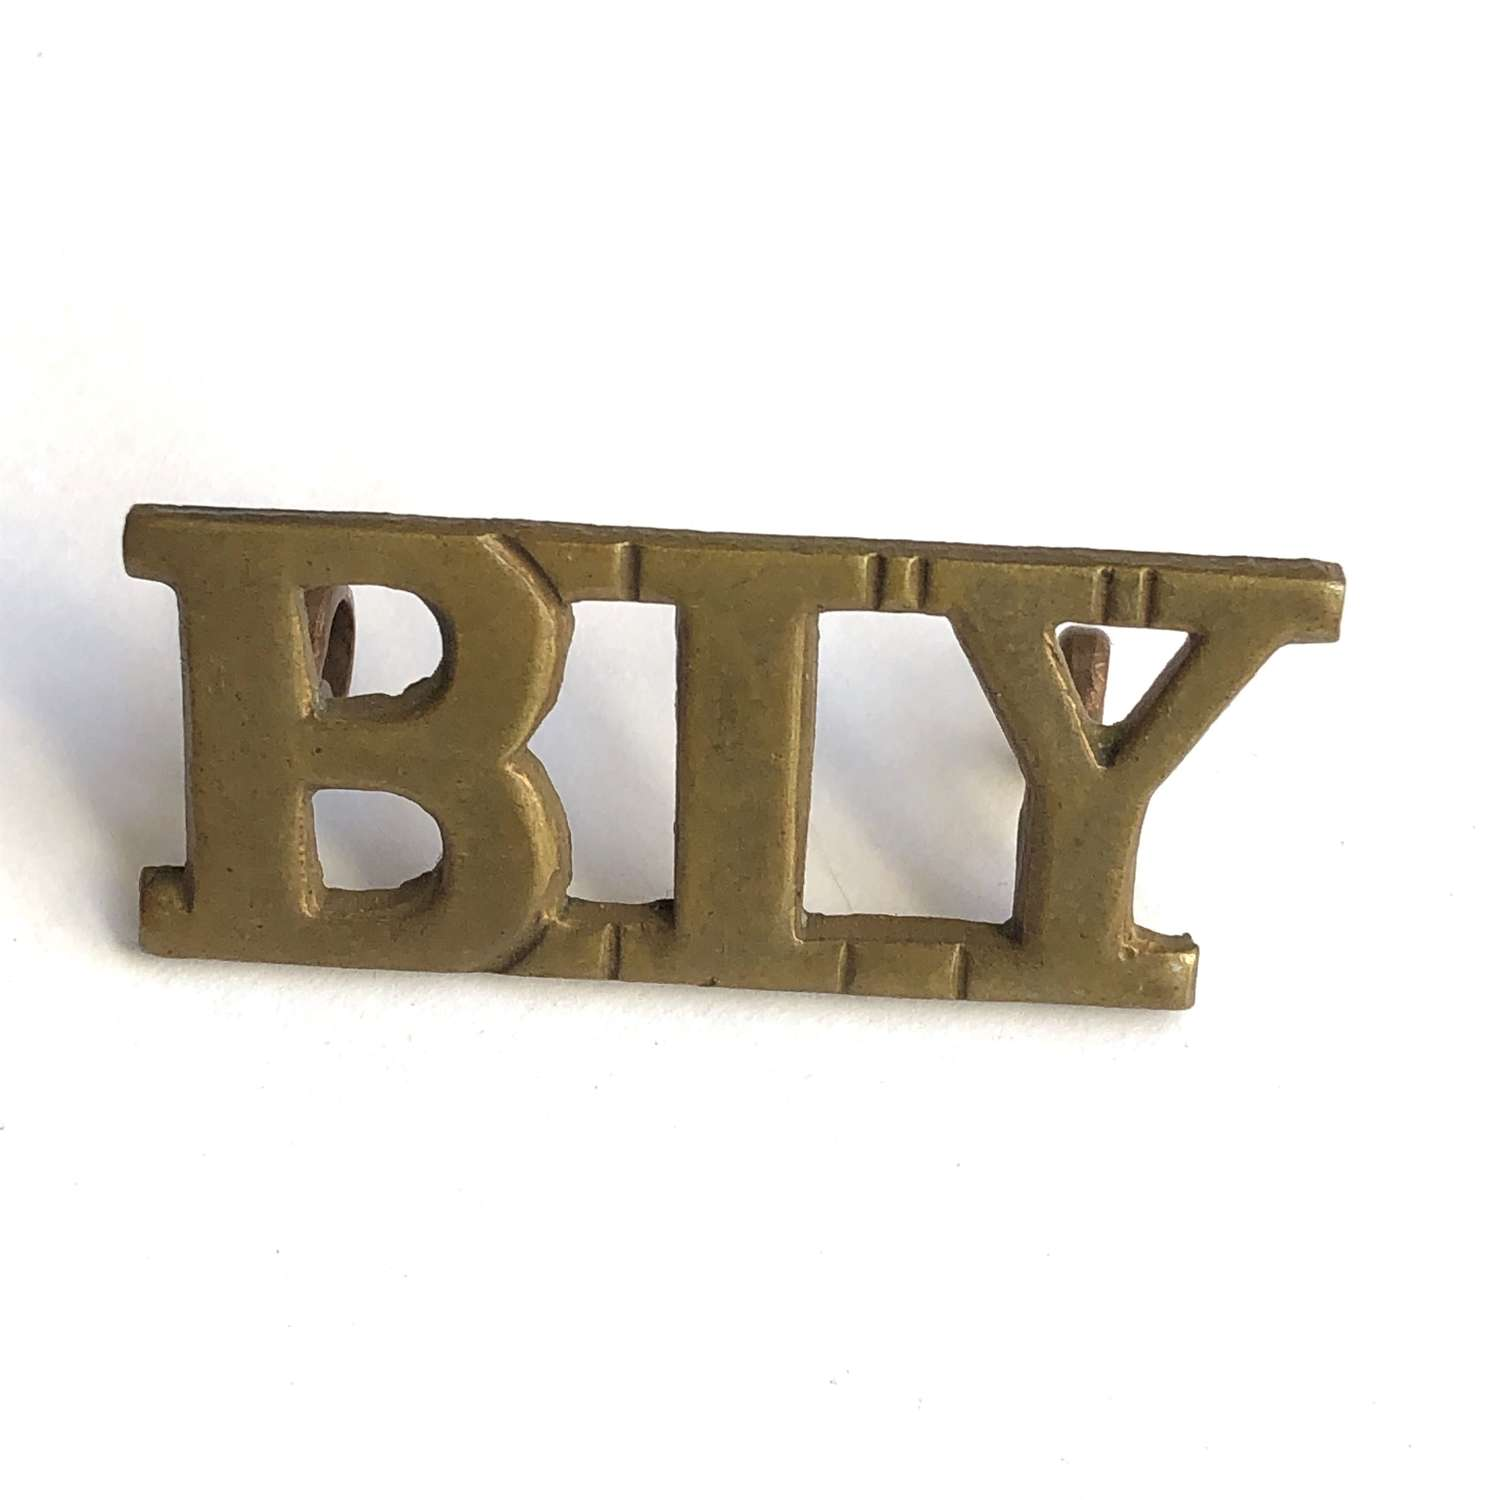 BIY Bedfordshire Imperial Yeomanry shoulder title by Lambourne